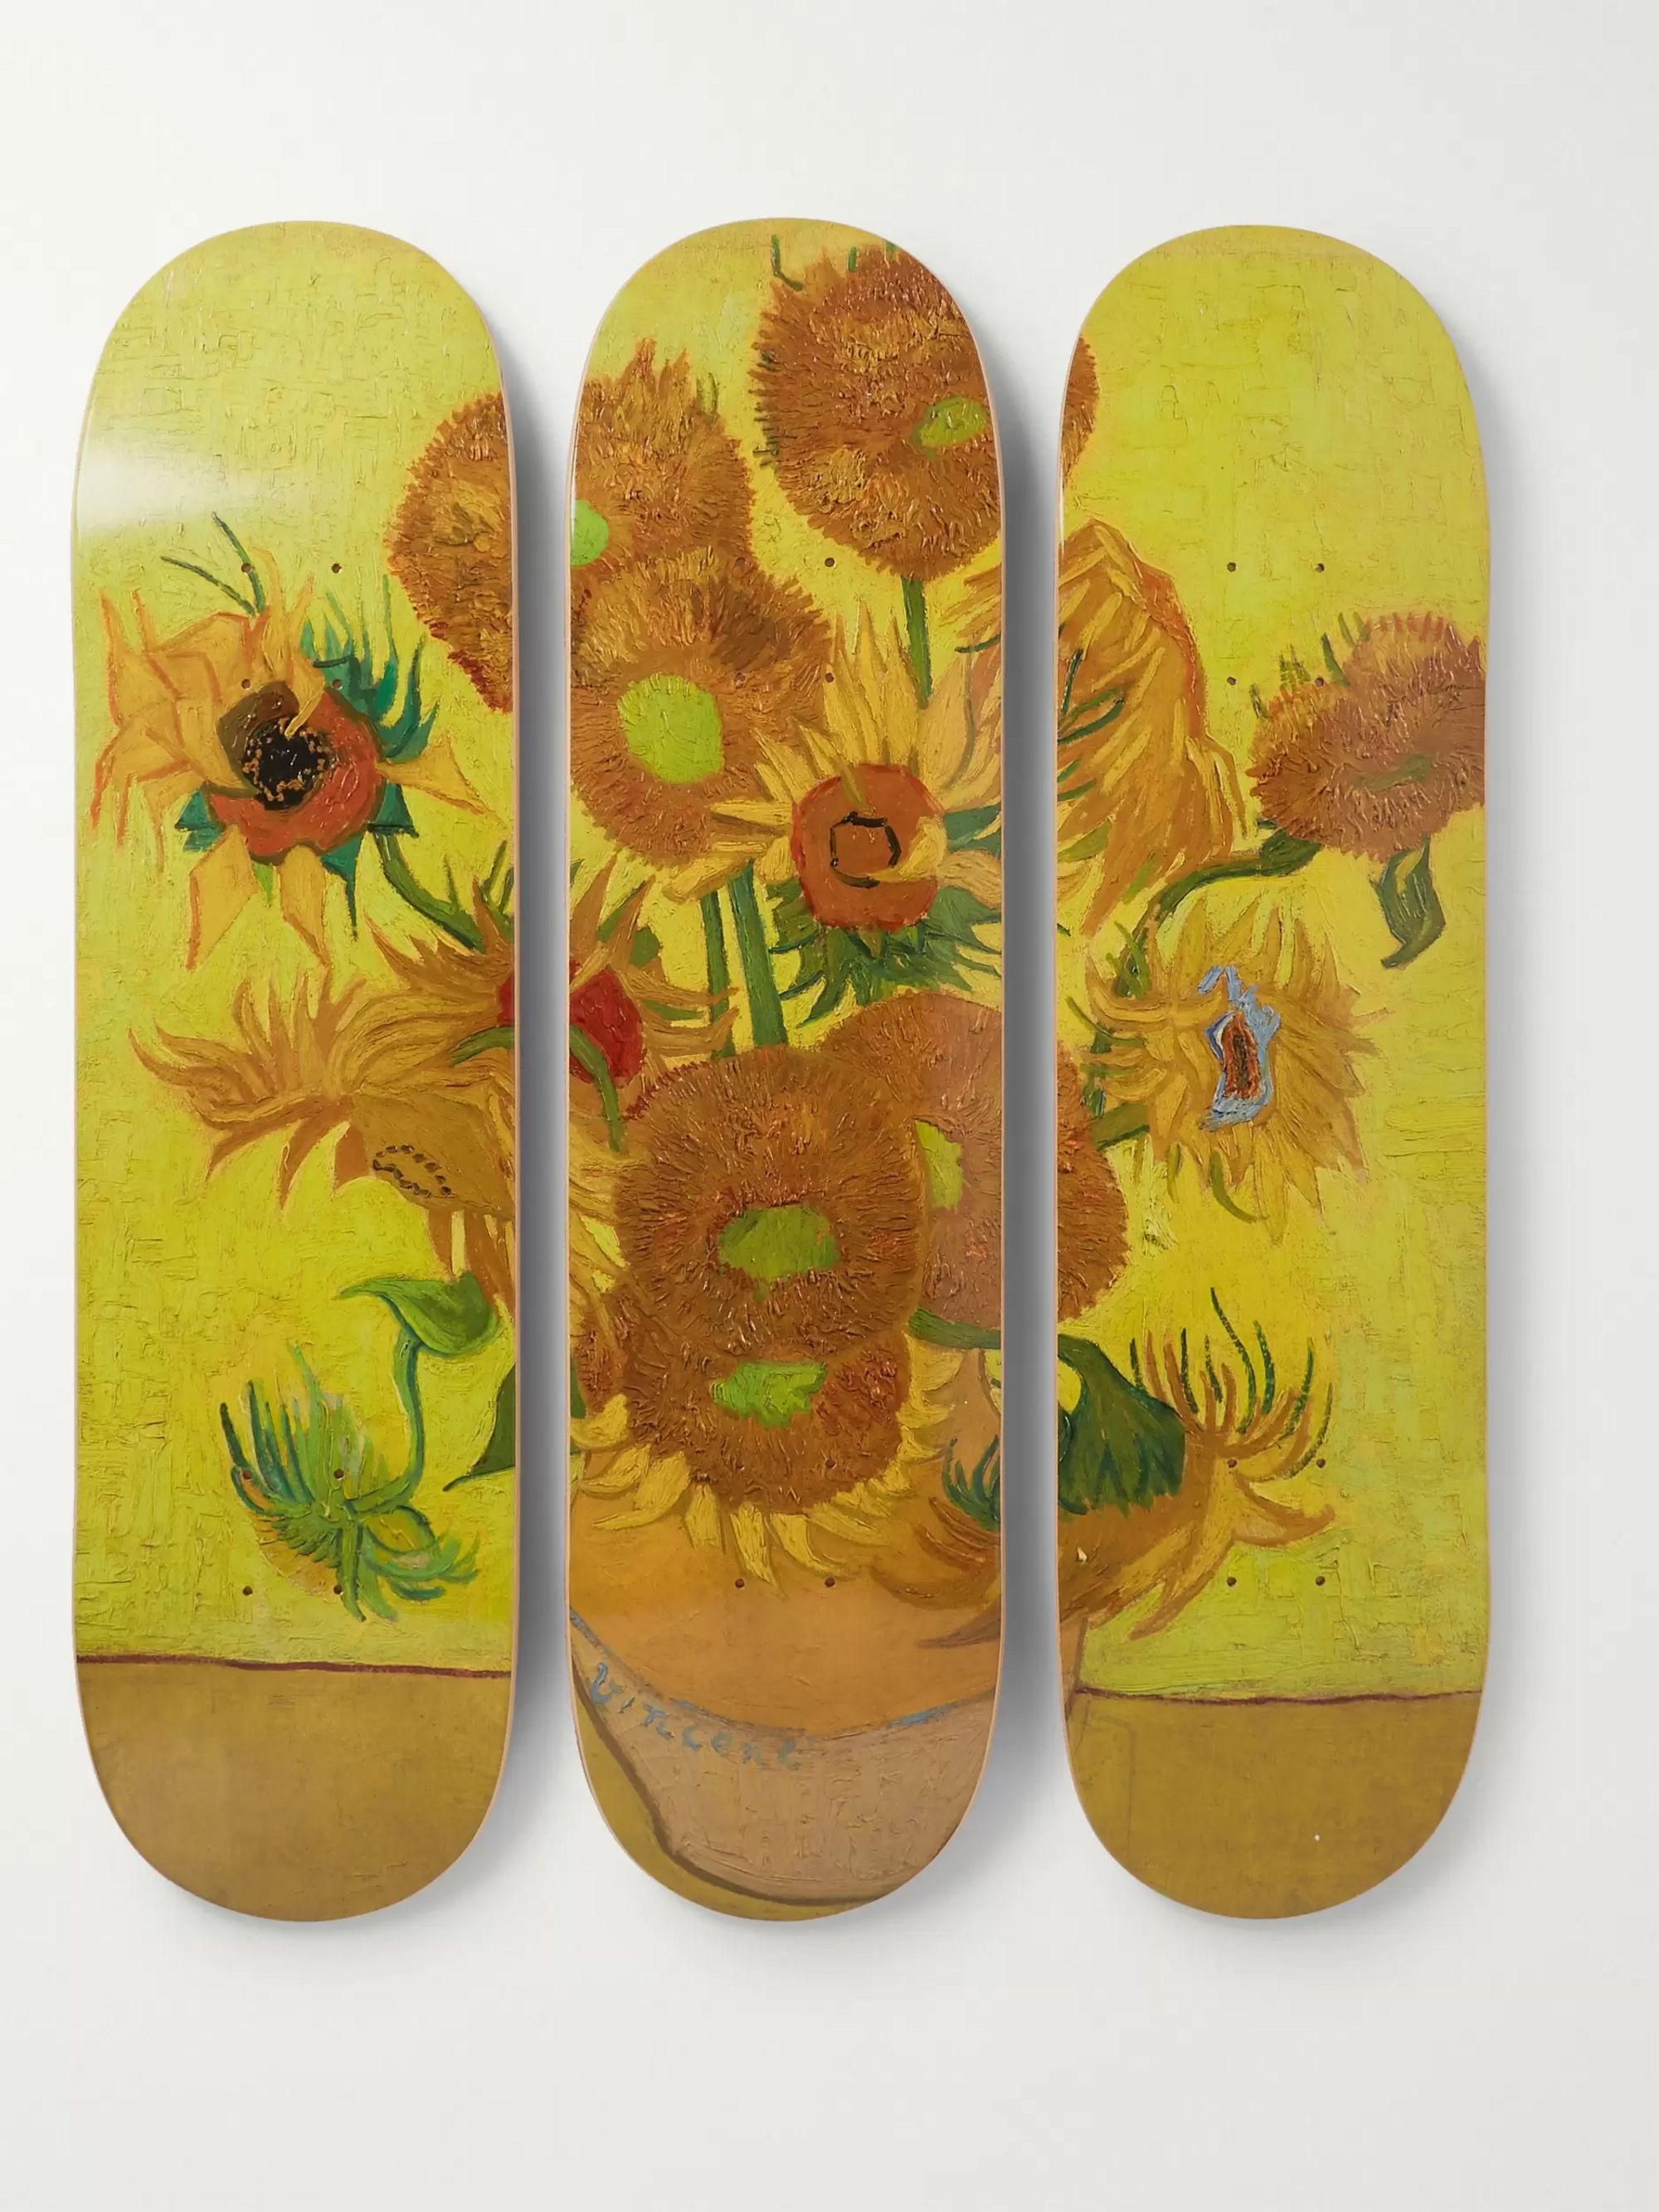 + Vincent Van Gogh Set Of Three Printed Wooden Skateboards by The Skate Room